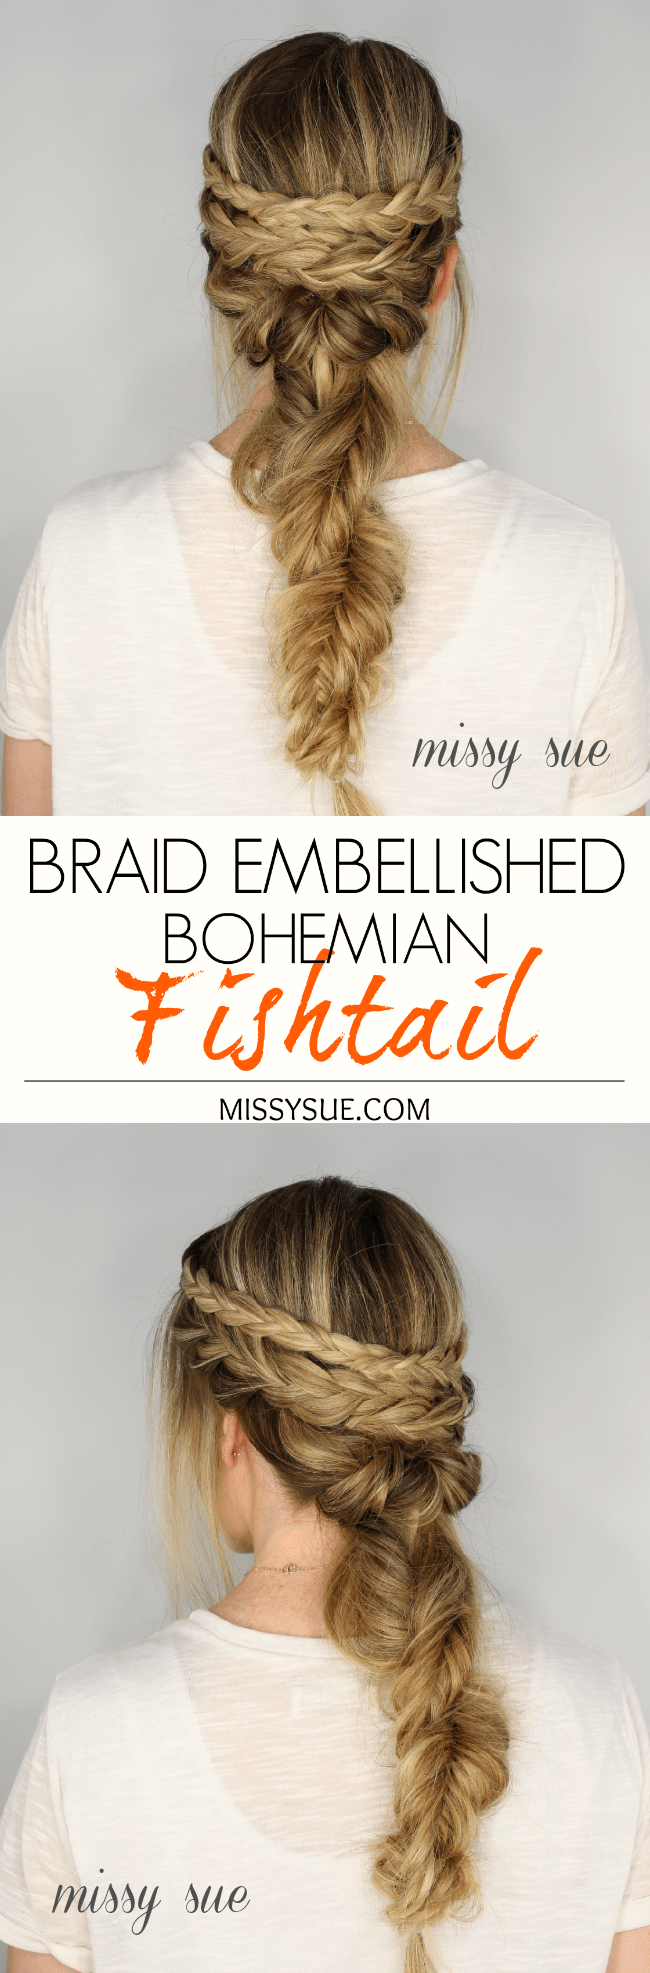 Braid Embellished Bohemian Fishtail